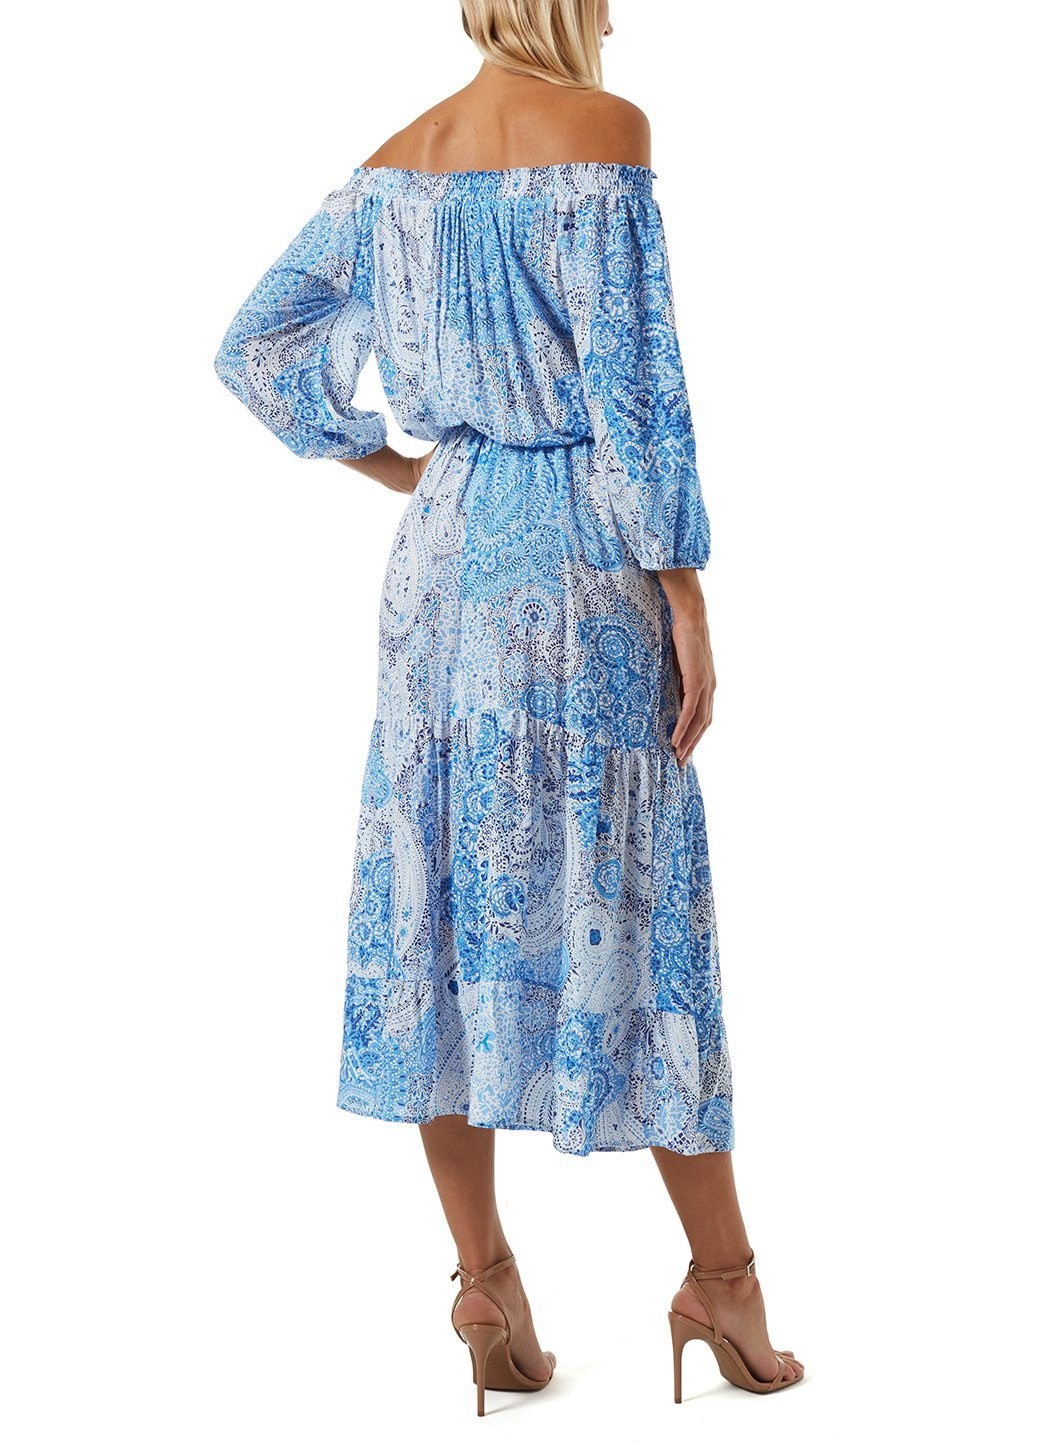 Condor Blue Paisley Dress